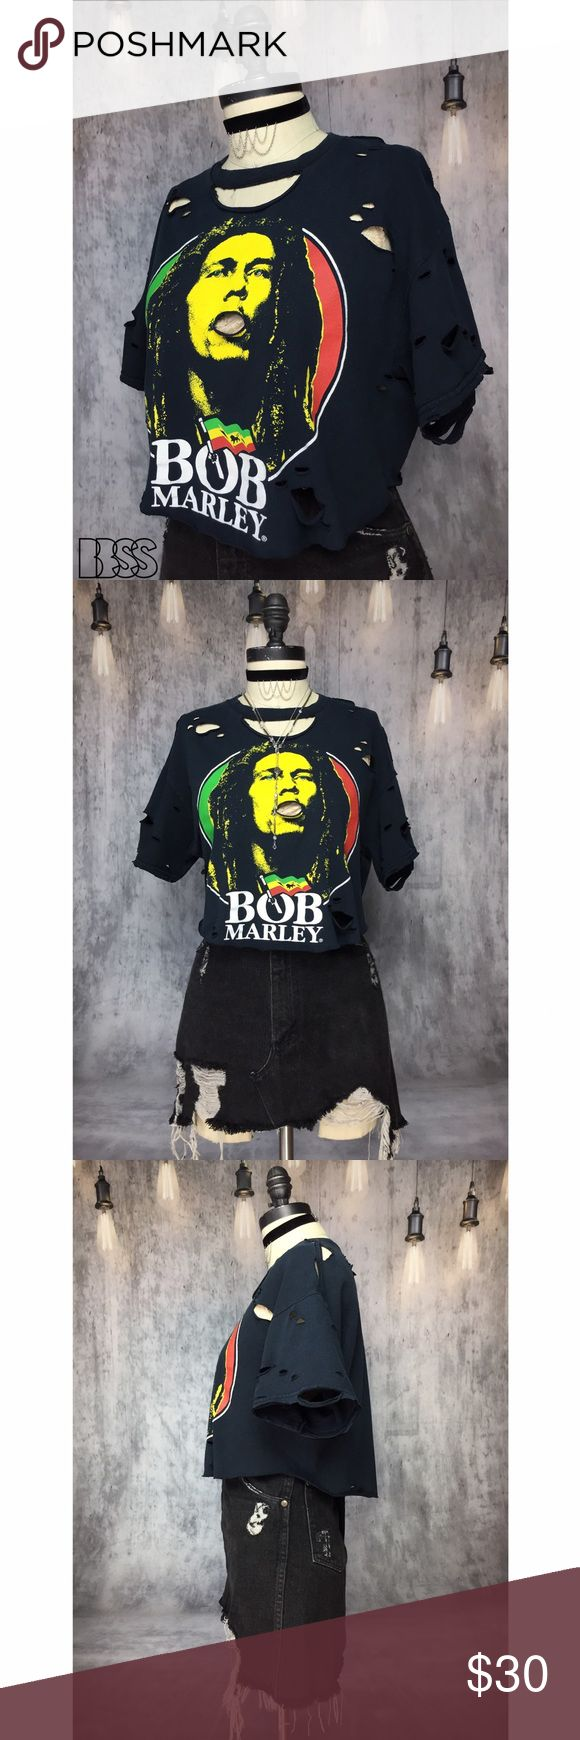 BOB MARLEY DISTRESSED SCALLOPED GEM CROP TSHIRT!! BOB MARLEY DISTRESSED SCALLOPED GEM CROP TSHIRT!! Super cute classic BOB MARLEY iconic music legend TEE!! Shirt has been cropped, scalloped, distressed with rhinestone details! Fabric is COTTON worn in faded vintage black! PERFECT for SUMMER FESTIVALS AND CONCERTS! MEASUREMENTS - BUST: 19.5' / LENGTH: 17' (longest) 14.5' (sides) Marked size MEDIUM #grunge #band Vintage Tops Crop Tops